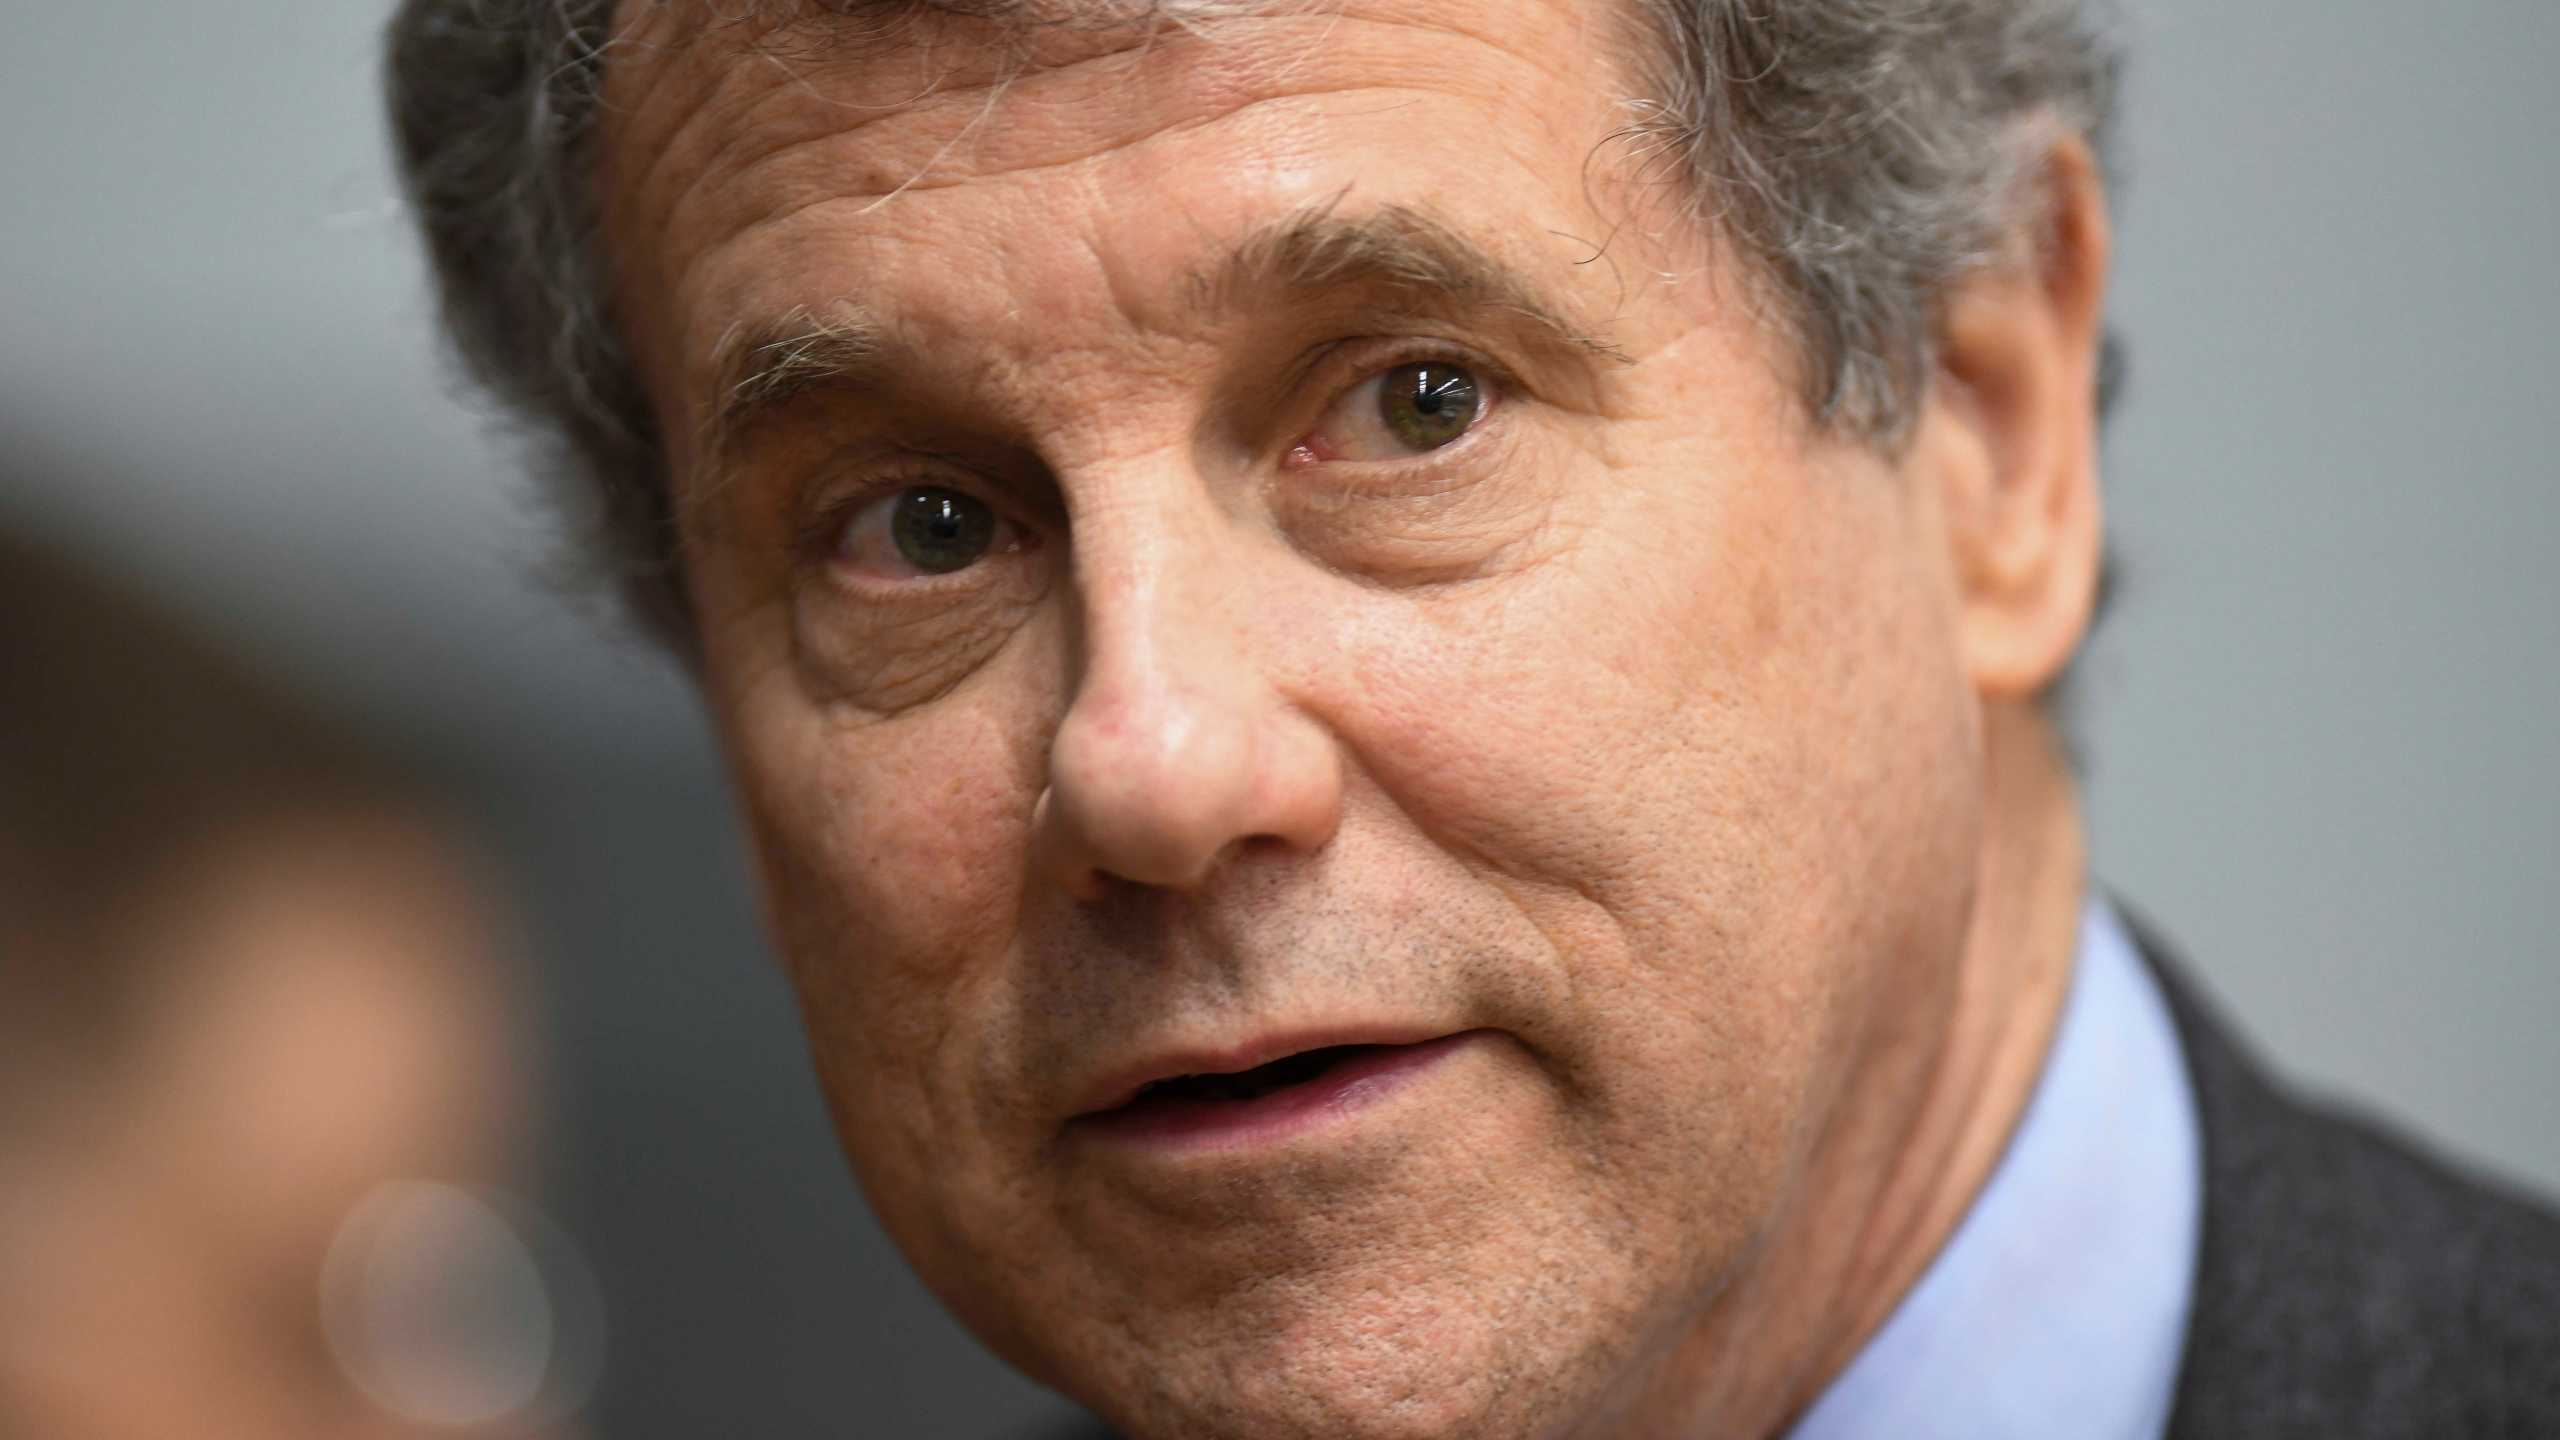 FILE - In this March 3, 2019 file photo, Sen. Sherrod Brown, D-Ohio, speaks to reporters (AP Photo/Julie Bennett)